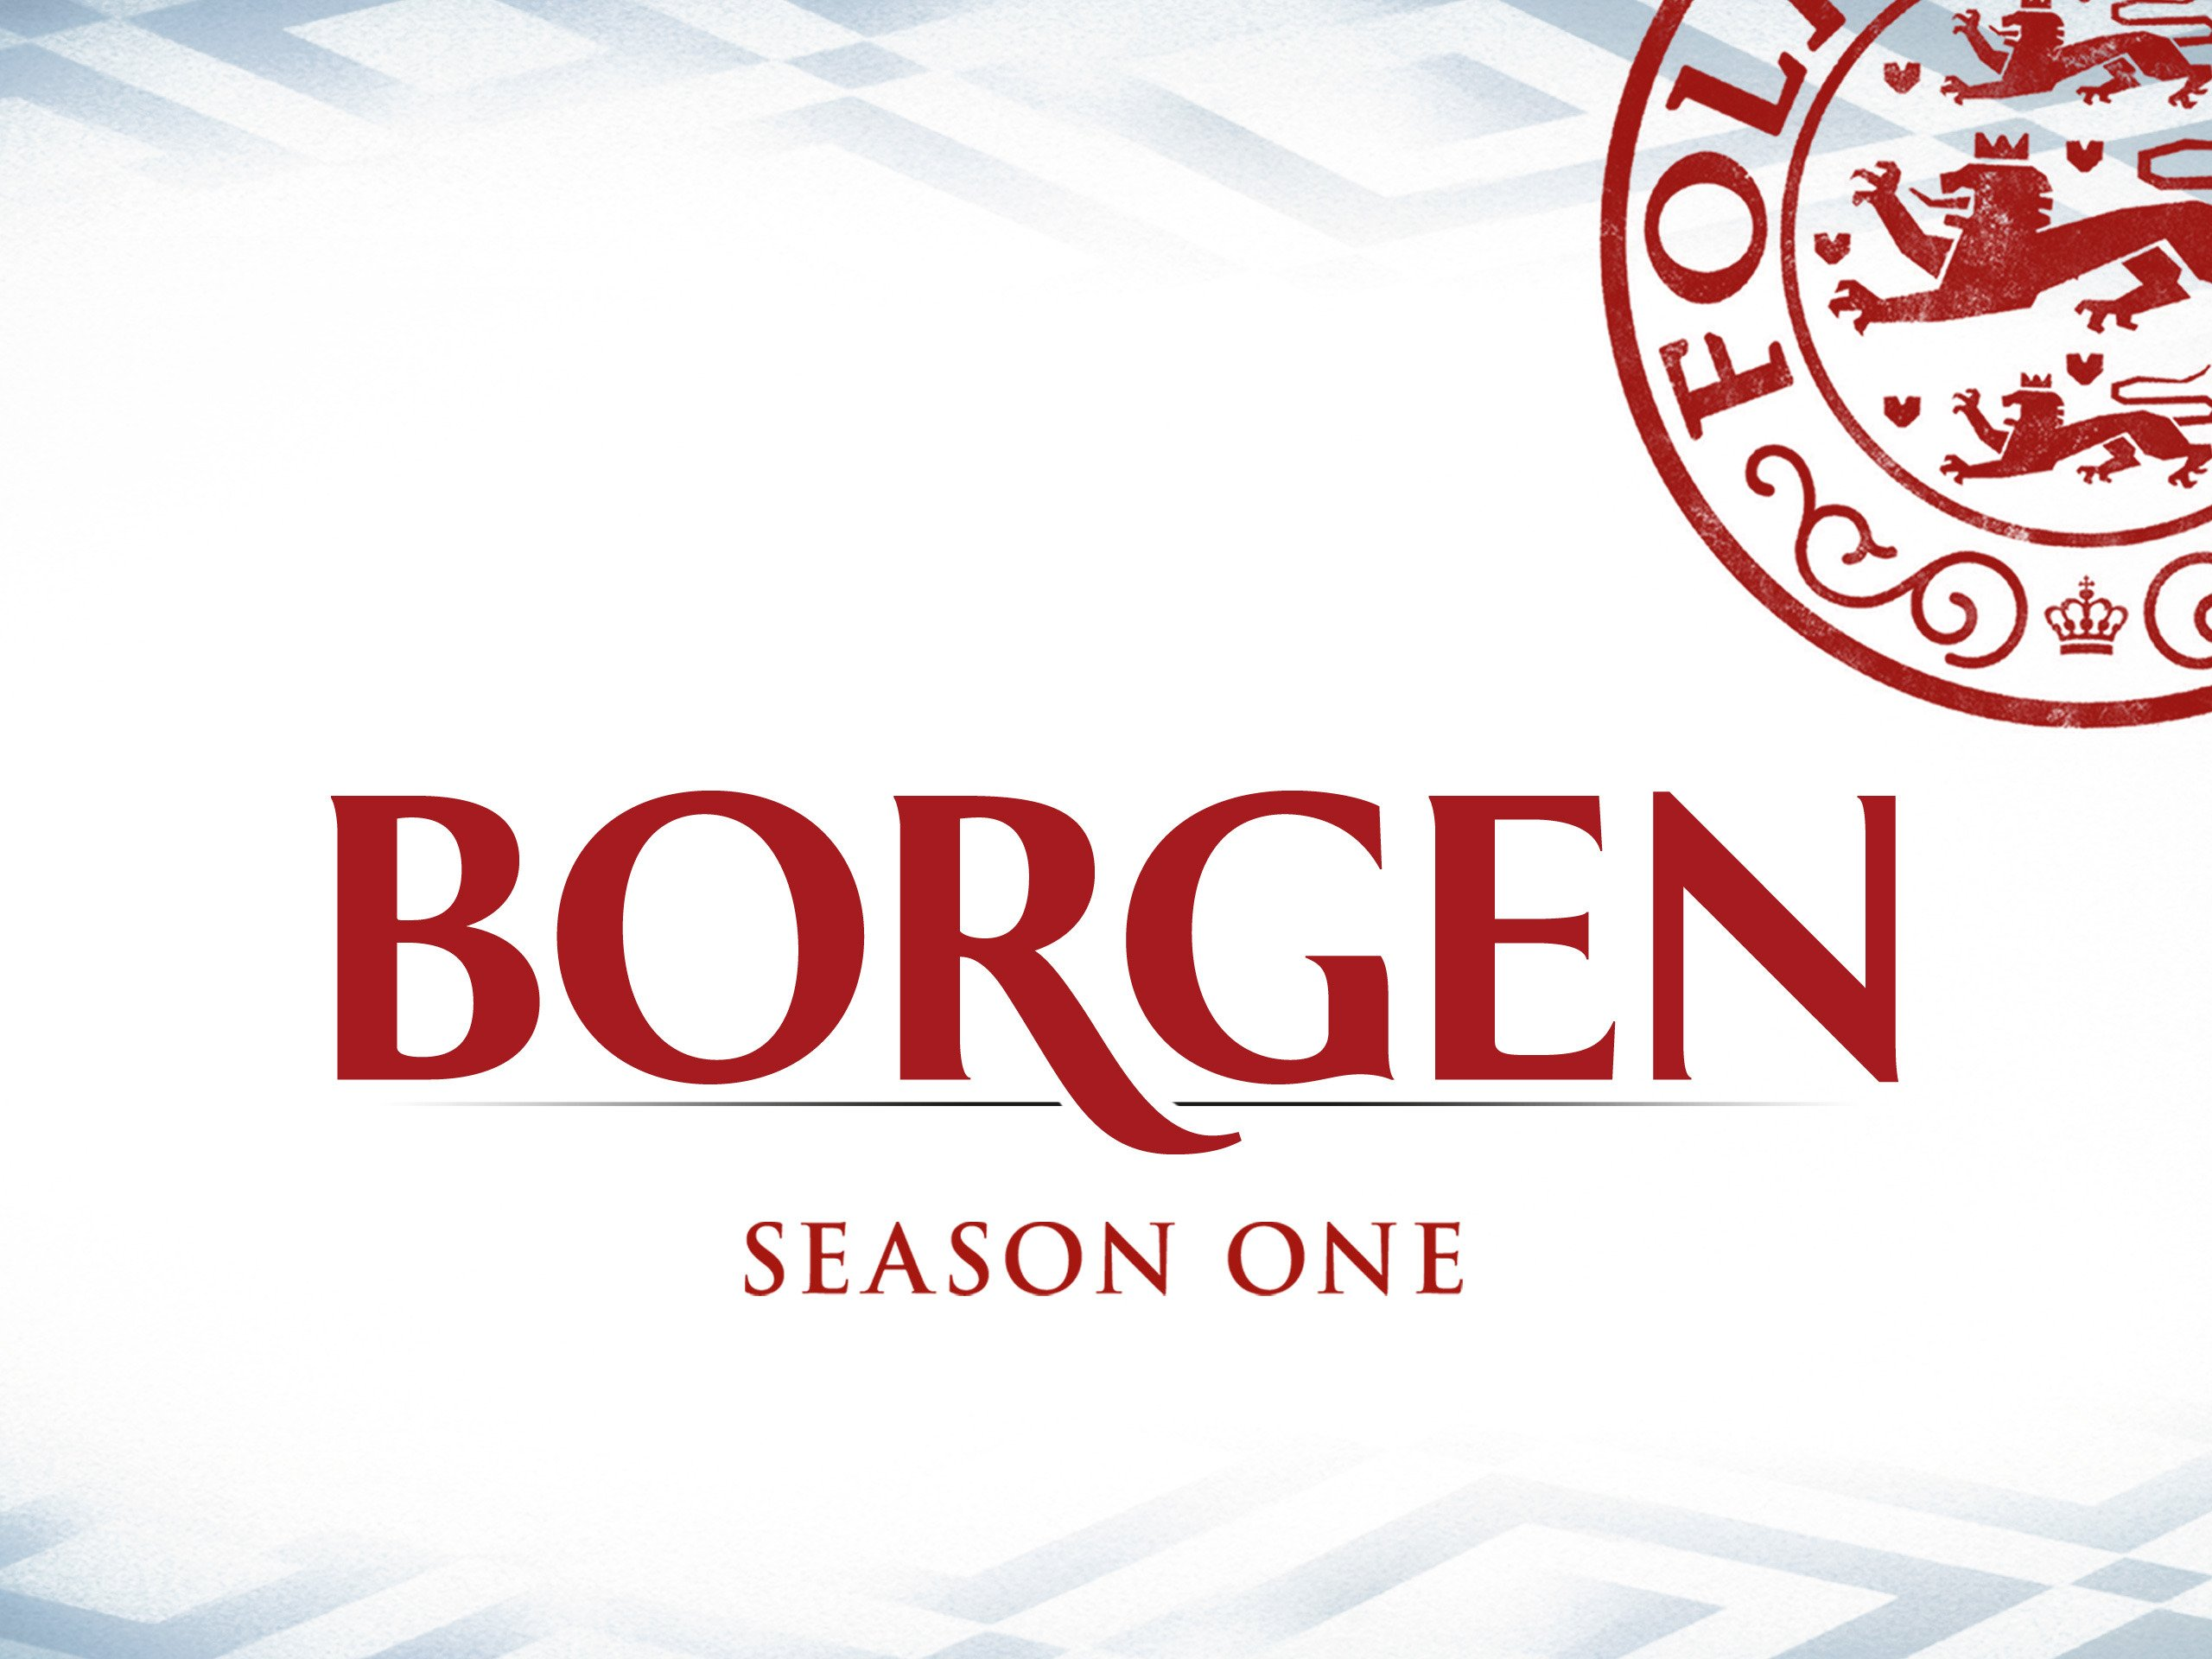 Borgen Season 1 : Watch online now with Amazon Instant Video: Søren ...